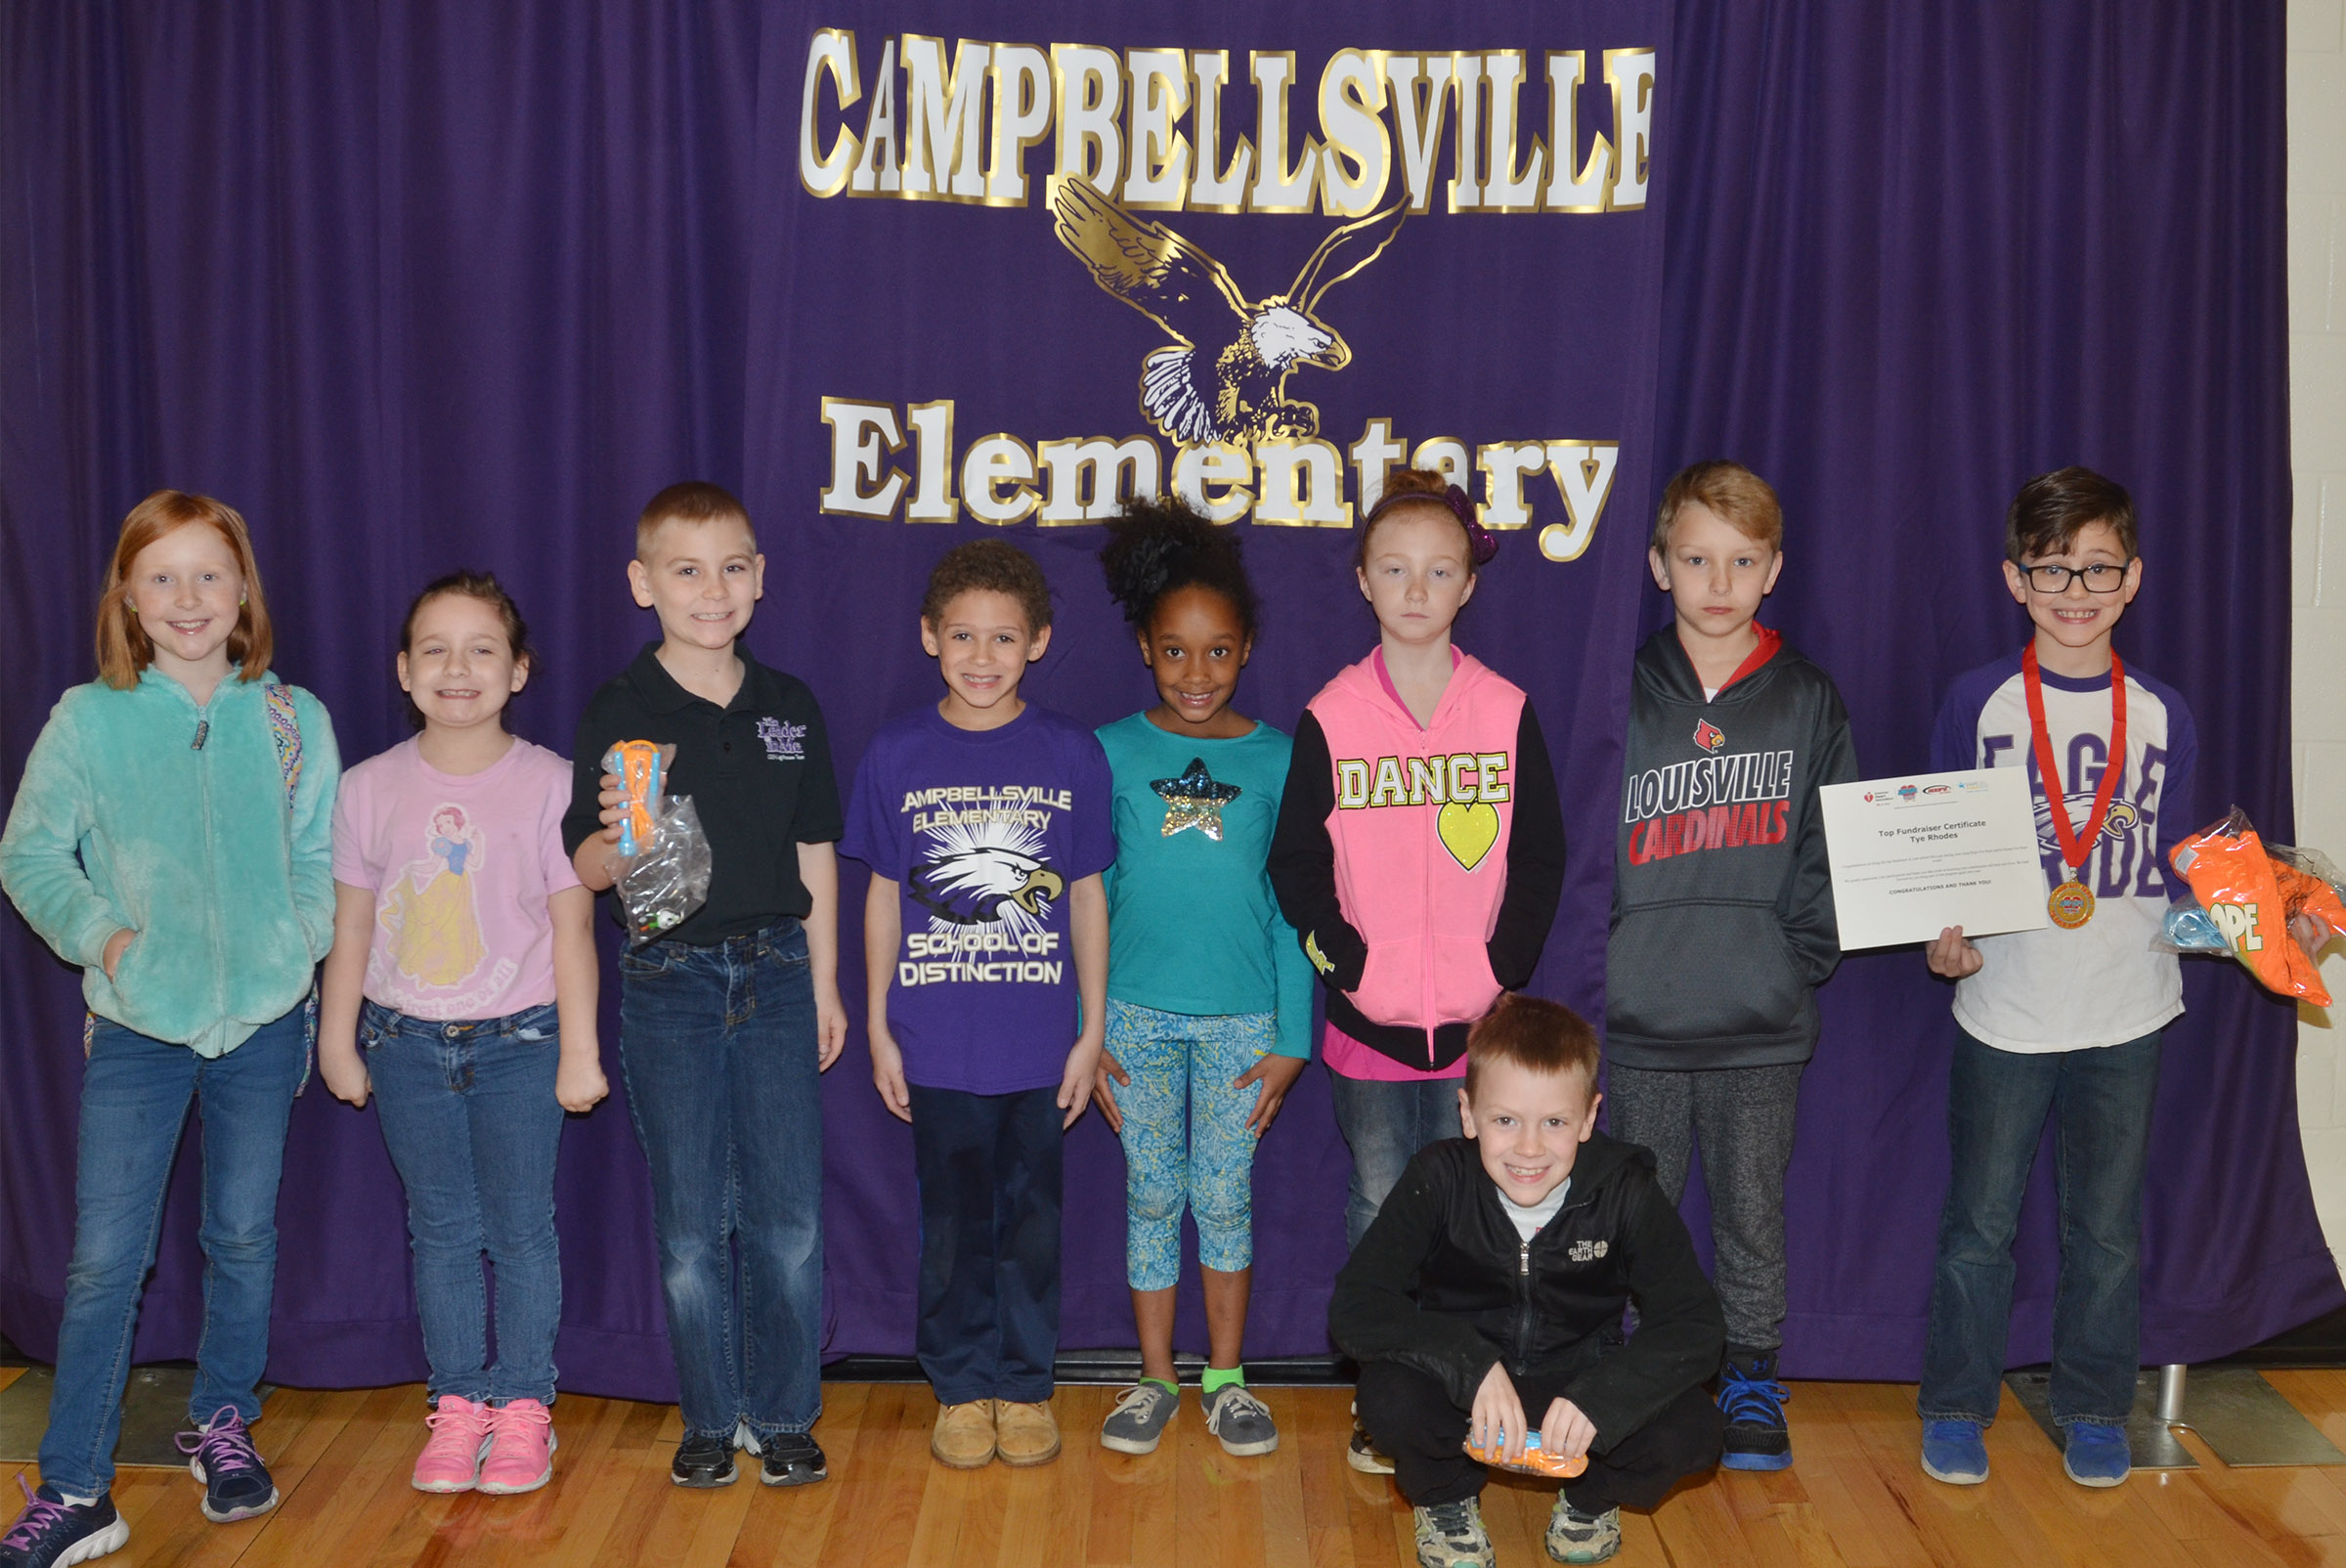 CES students participating in this year's Jump Rope for Heart fundraiser are, in front, third-grader Connor Coots. Back, from left, third-graders Nora Harris and Aliyah Burton, second-graders Joseph Greer, Trever Lasley and Lashonda Wilkinson, third-grader Savannah Wethington and second-graders Mason Davis and Tye Rhodes. Absent from the photo are second-graders Jaylin Christie and Evan Cundiff and third-grader Chyanne Christie.